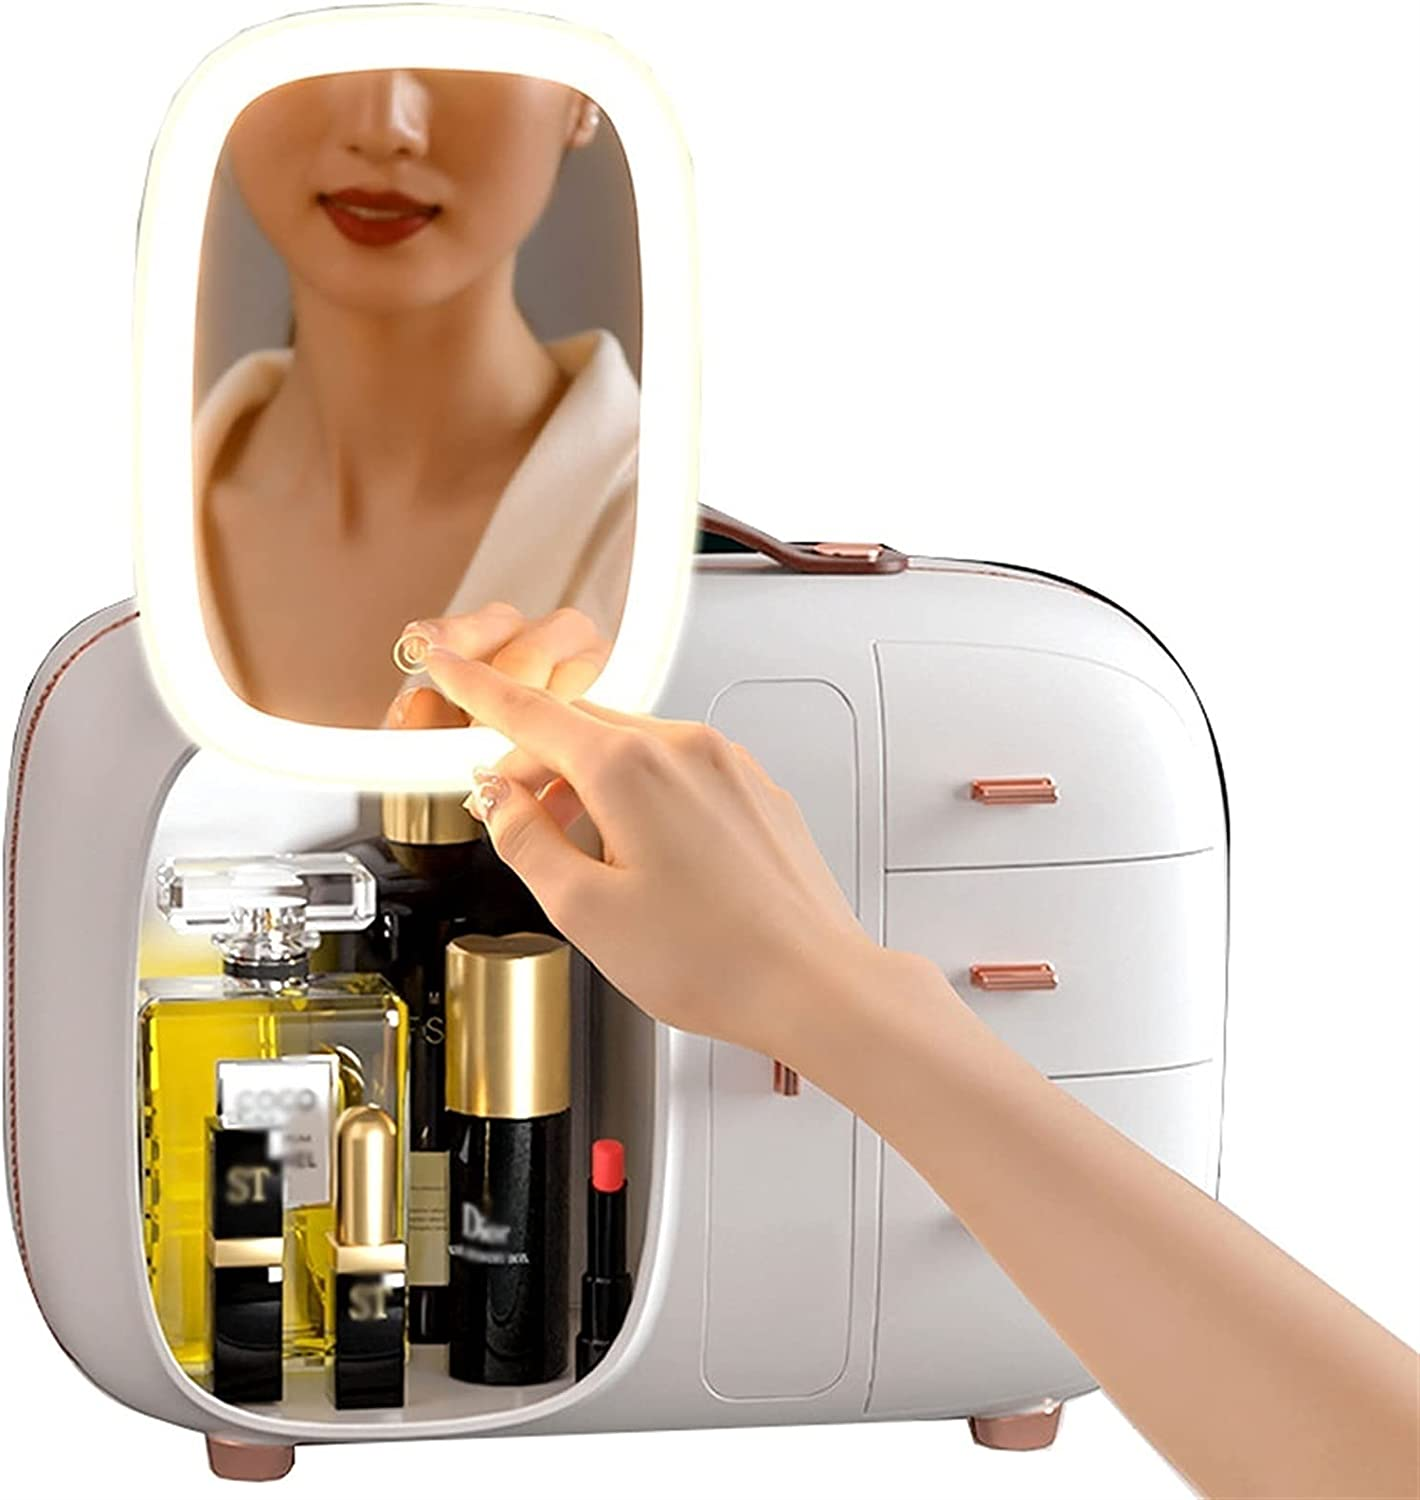 YXYH Popularity Makeup Organizer Adjustable Cosmetic Display Storage Case Directly managed store